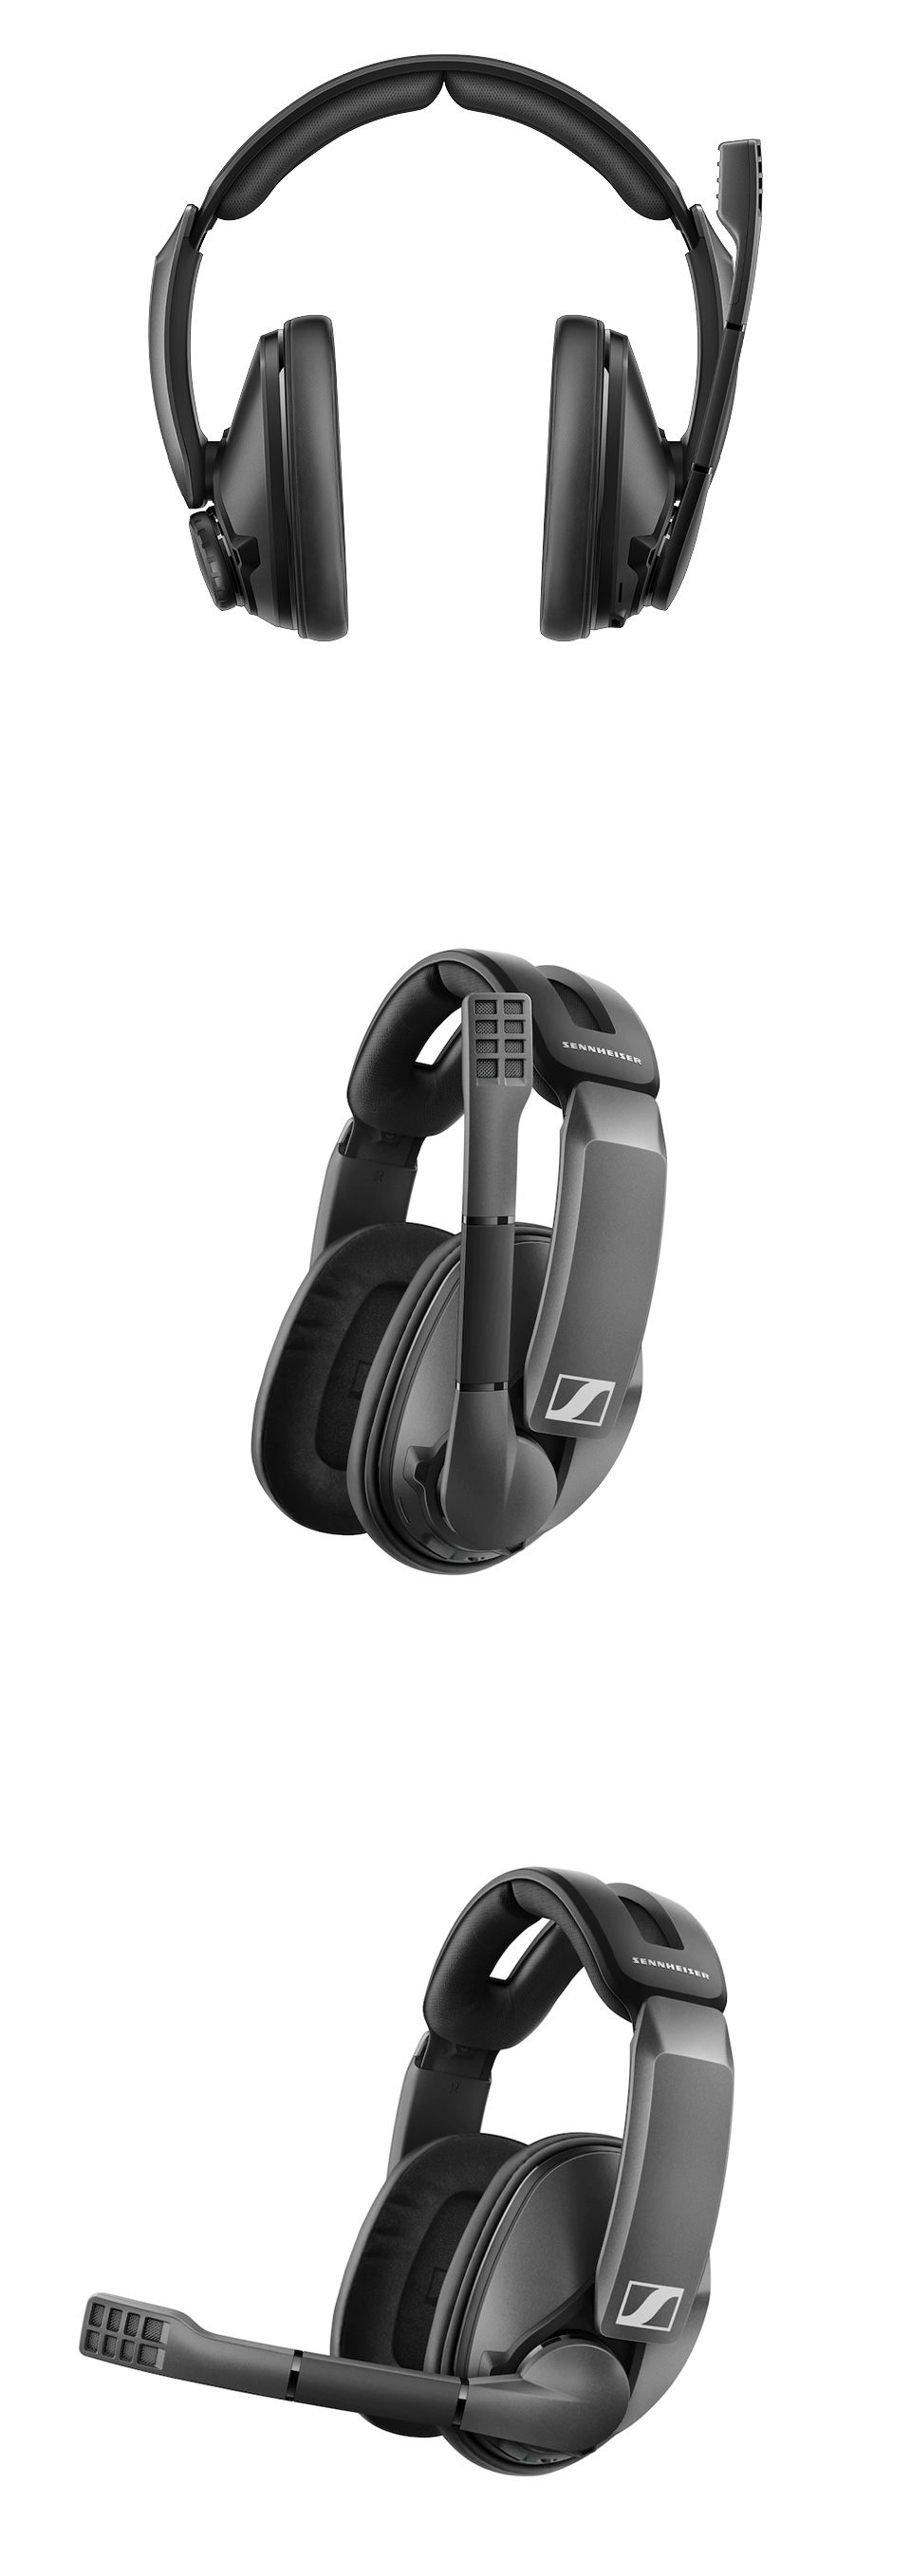 Sennheiser GSP 370 Wireless Gaming Headset product